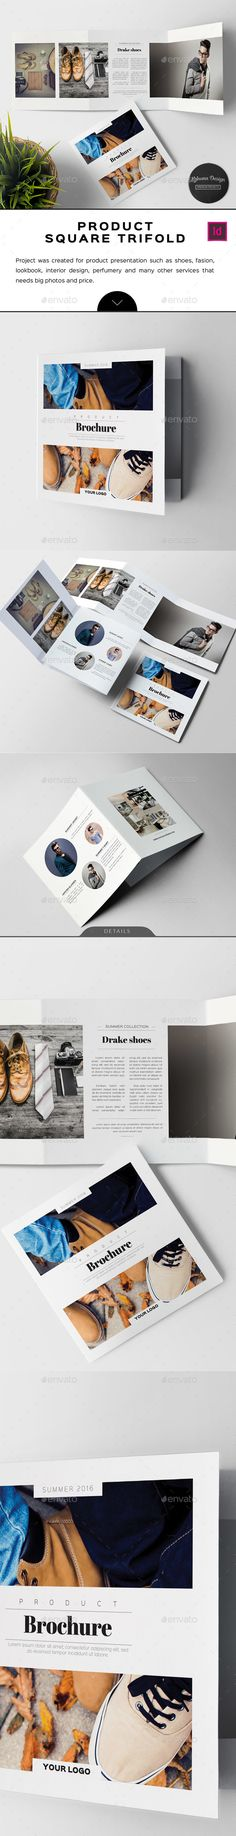 This Is An Easy To Use Turn Key Brochure Template In Indesign